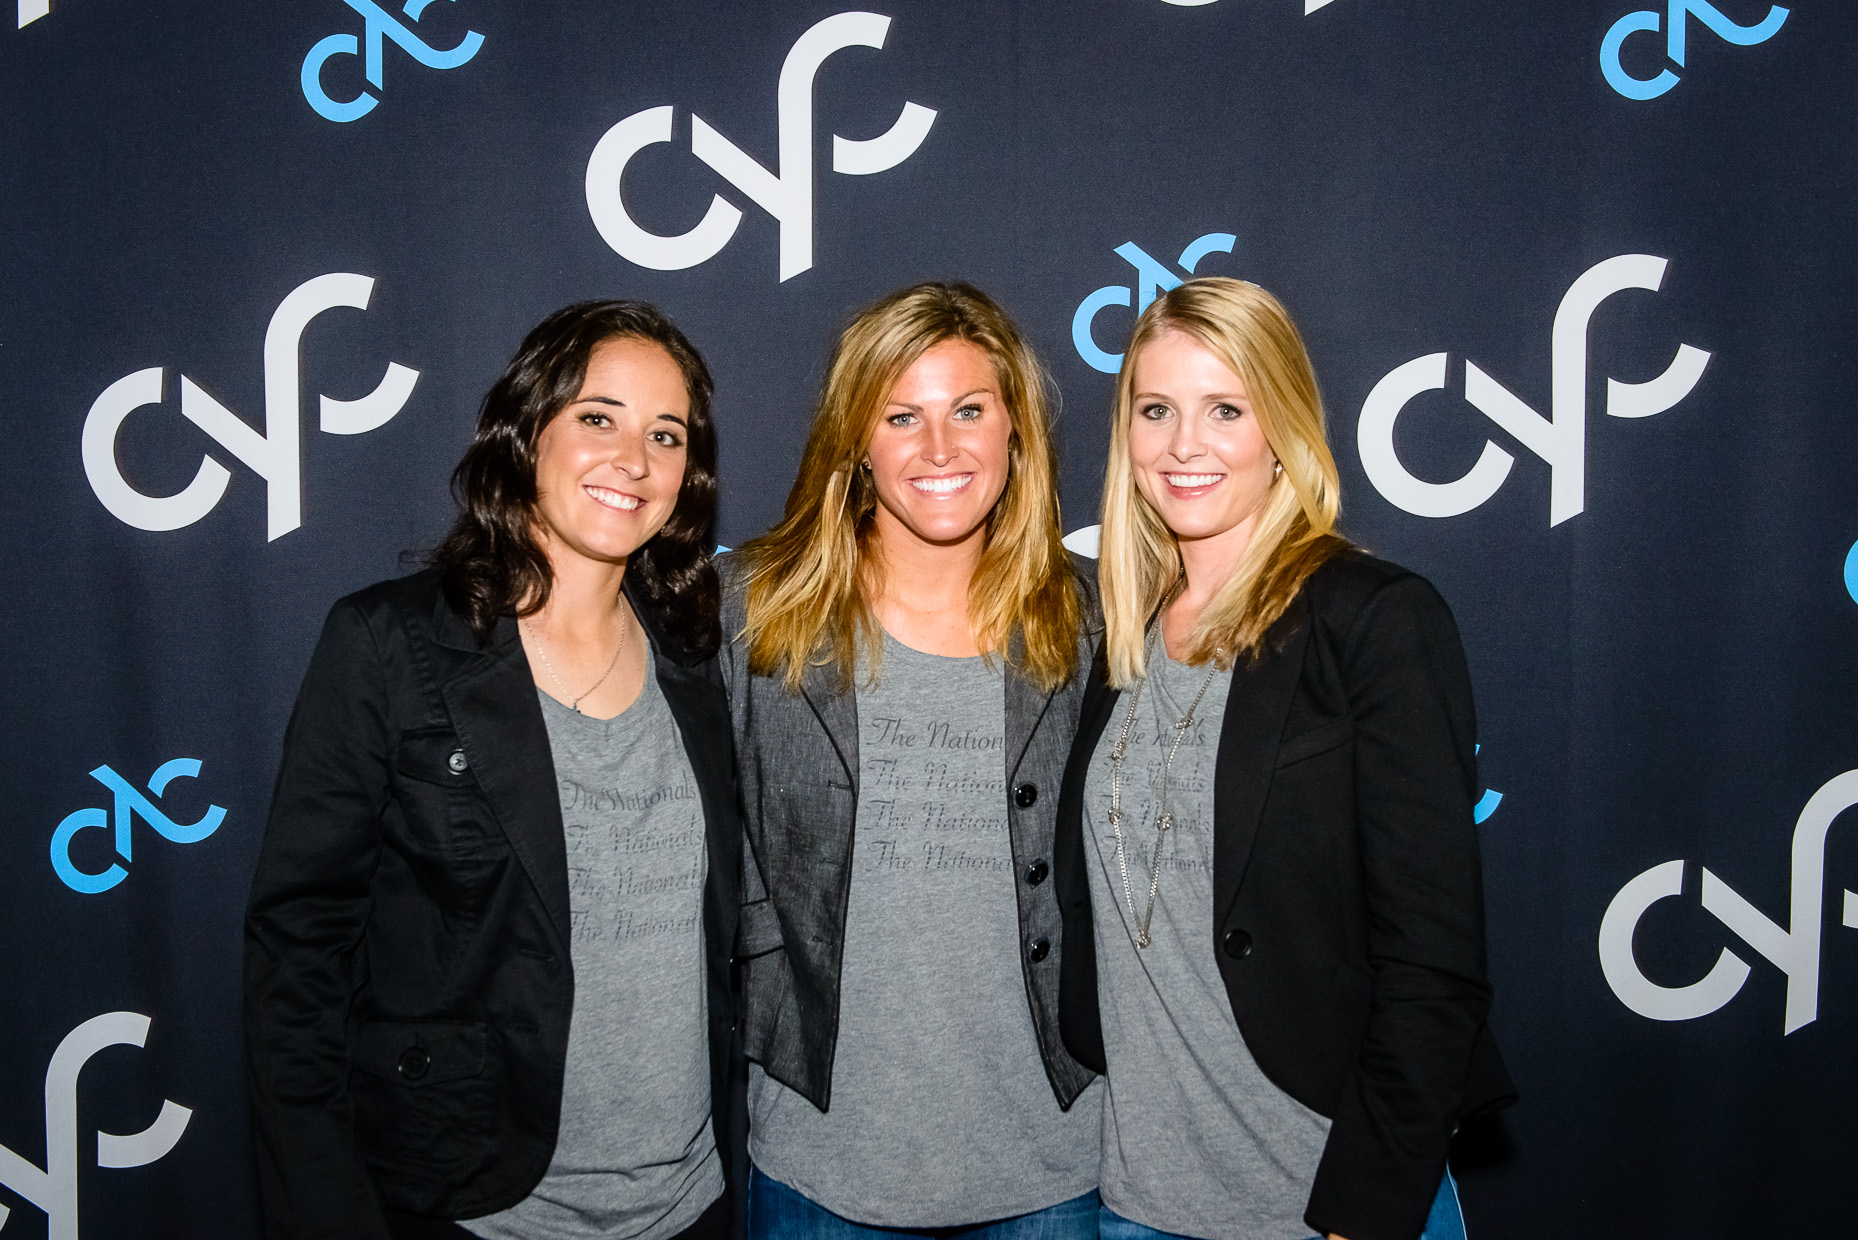 CYC-Fitness-Austin-Event-Photobooth-Photographer-Texas.jpg